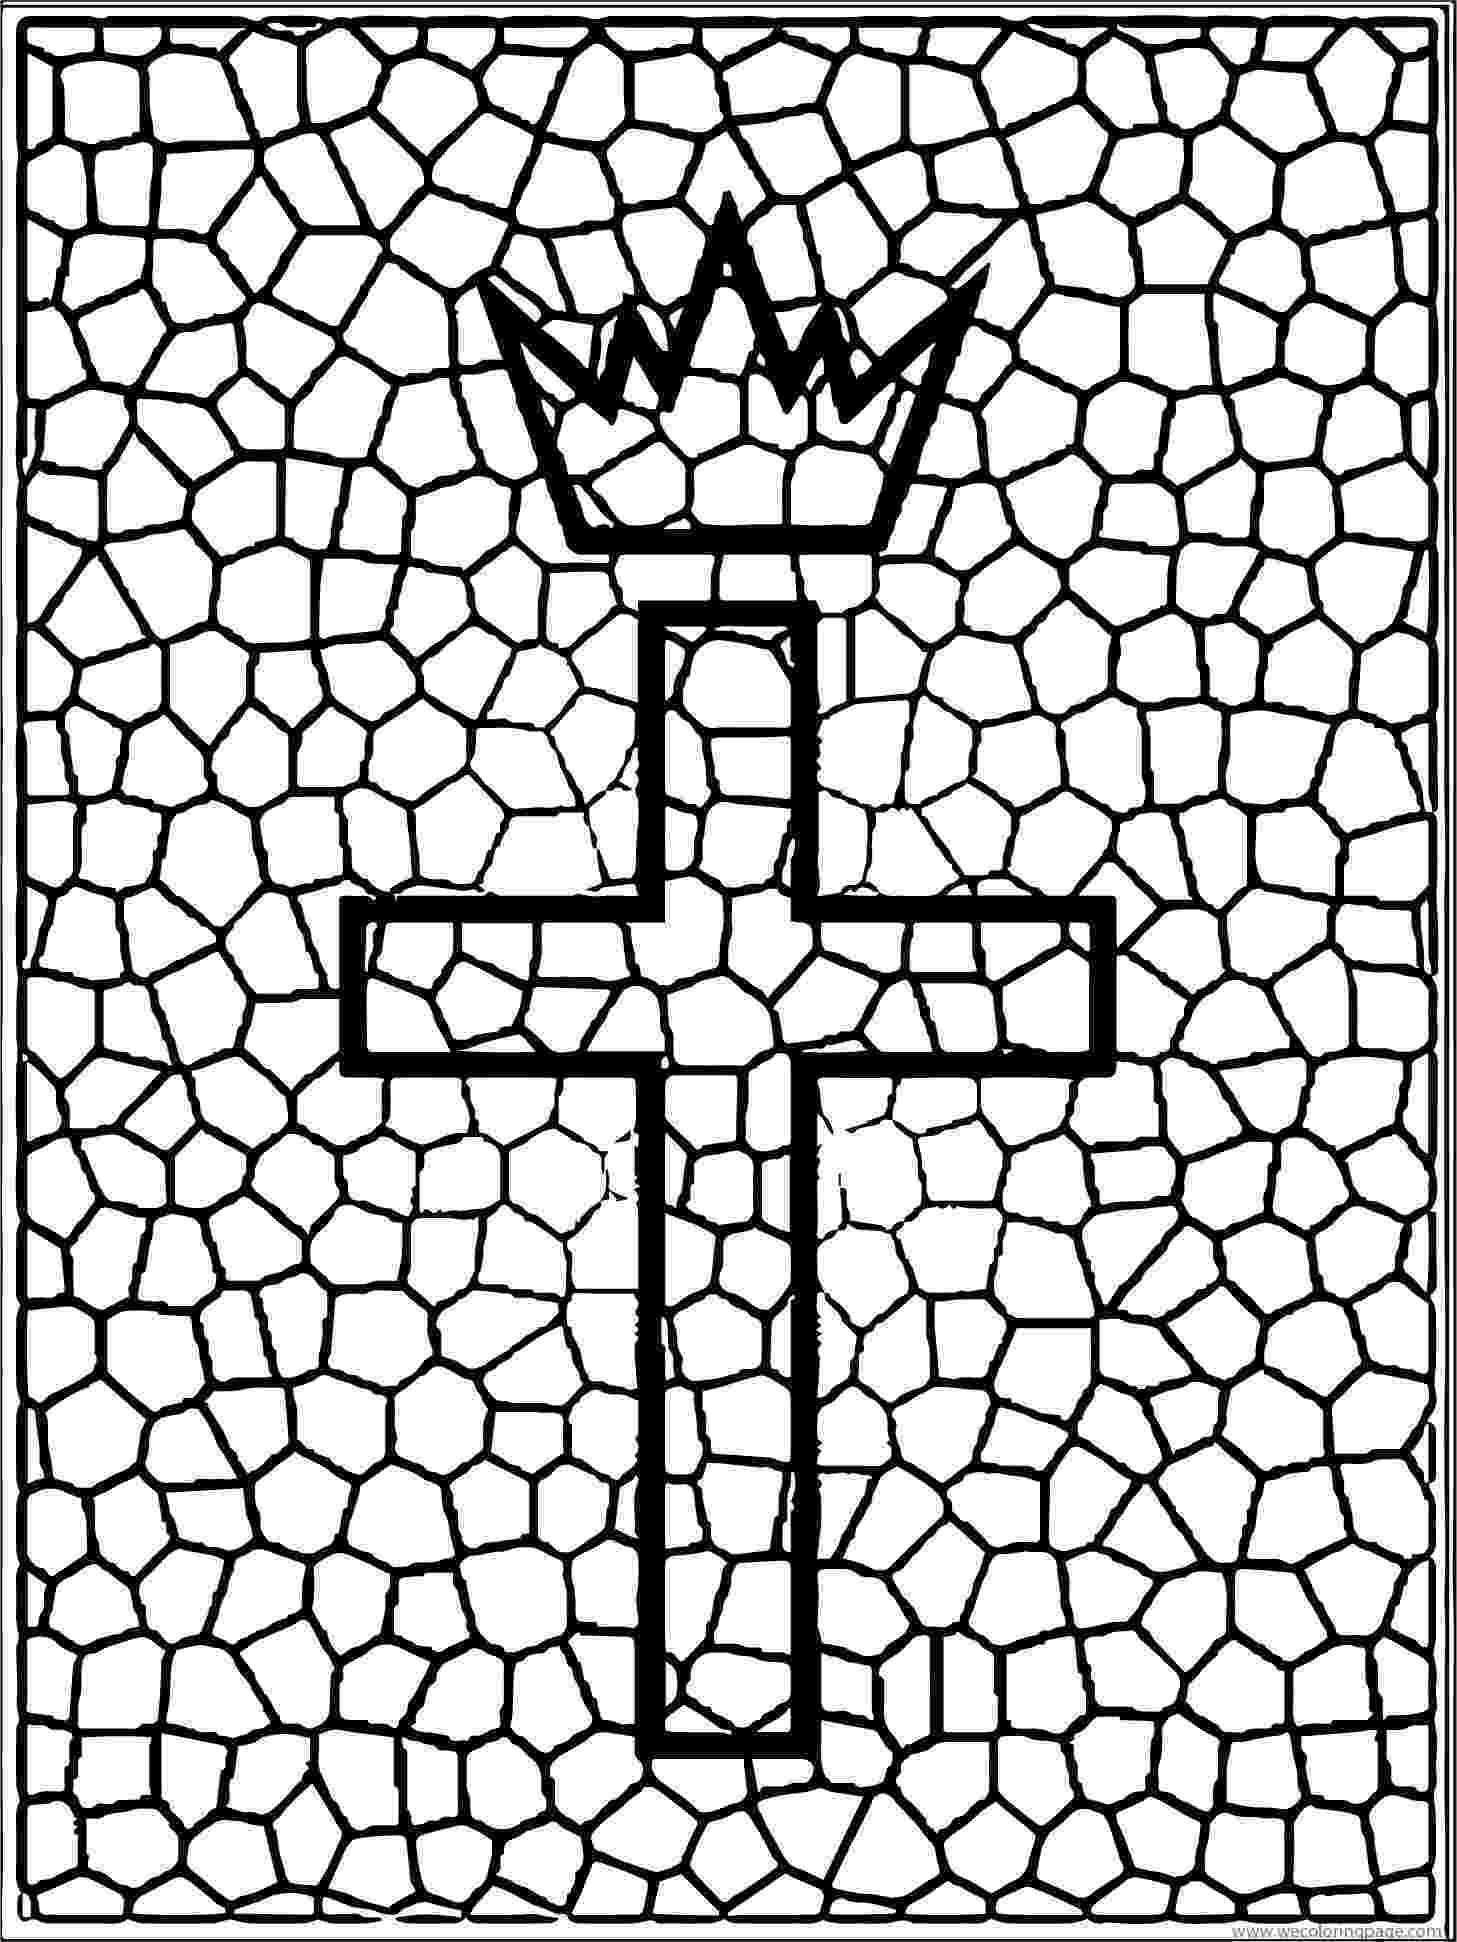 stained glass cross coloring page stained glass cross coloring page at getcoloringscom coloring stained glass page cross